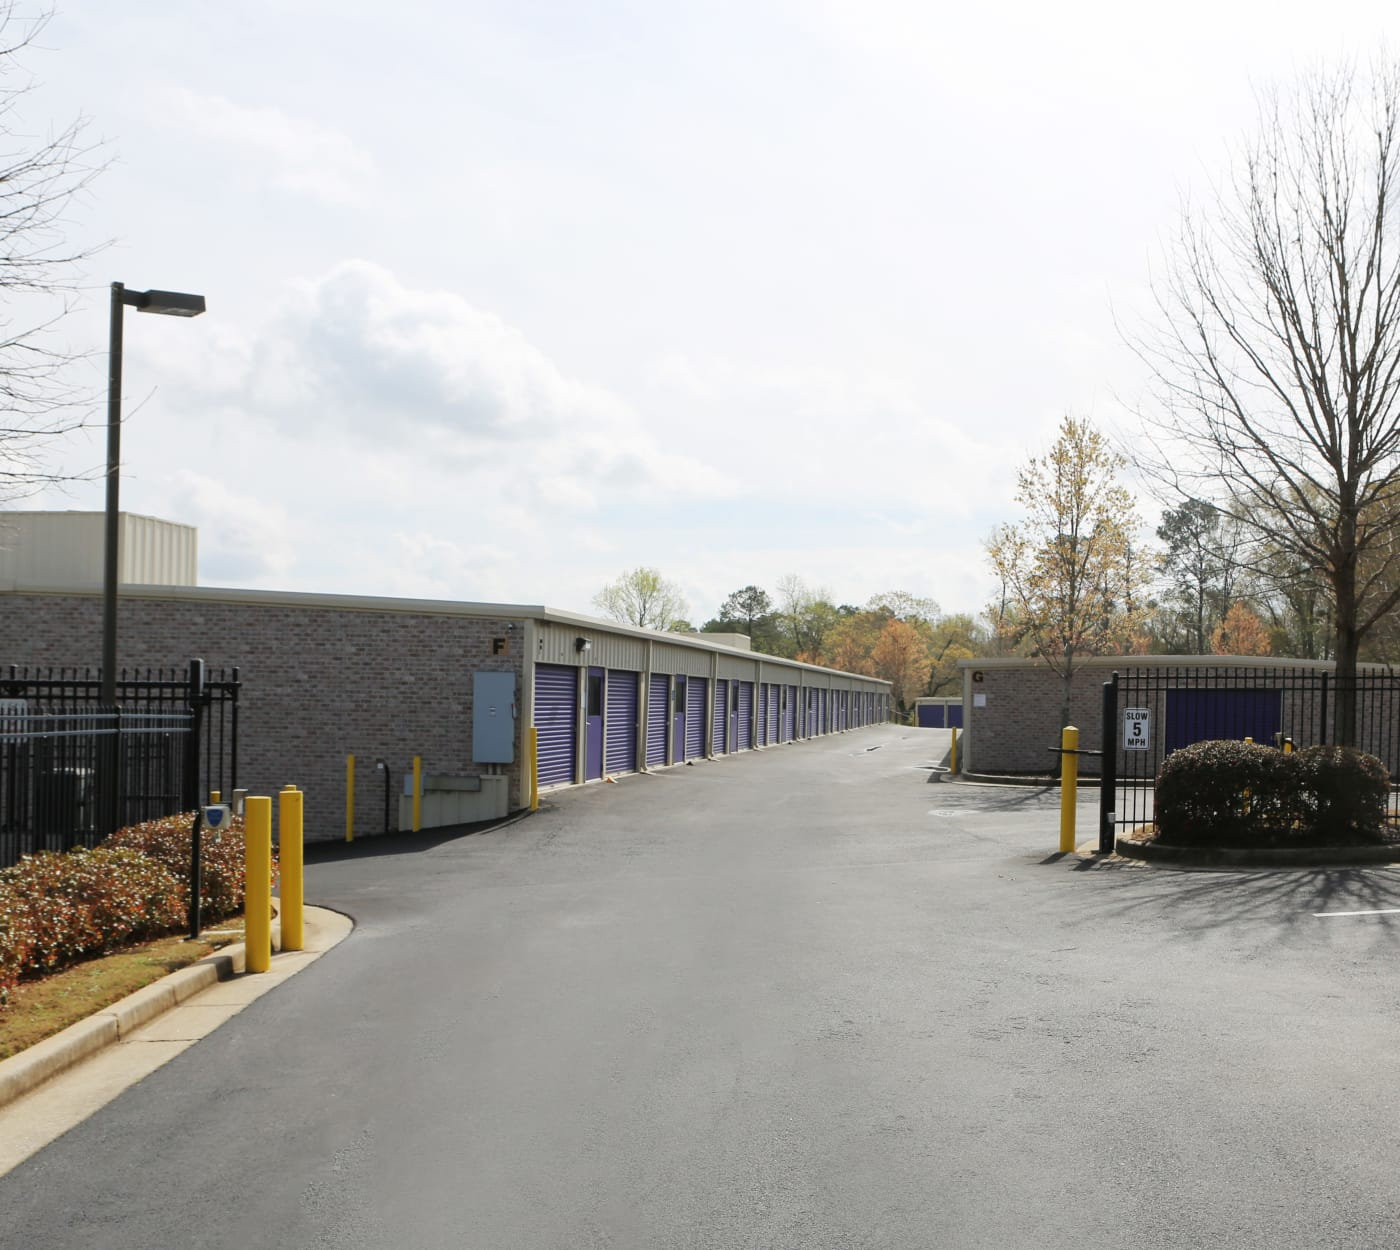 Entrance gate at StoreSmart Self-Storage in Watkinsville, Georgia